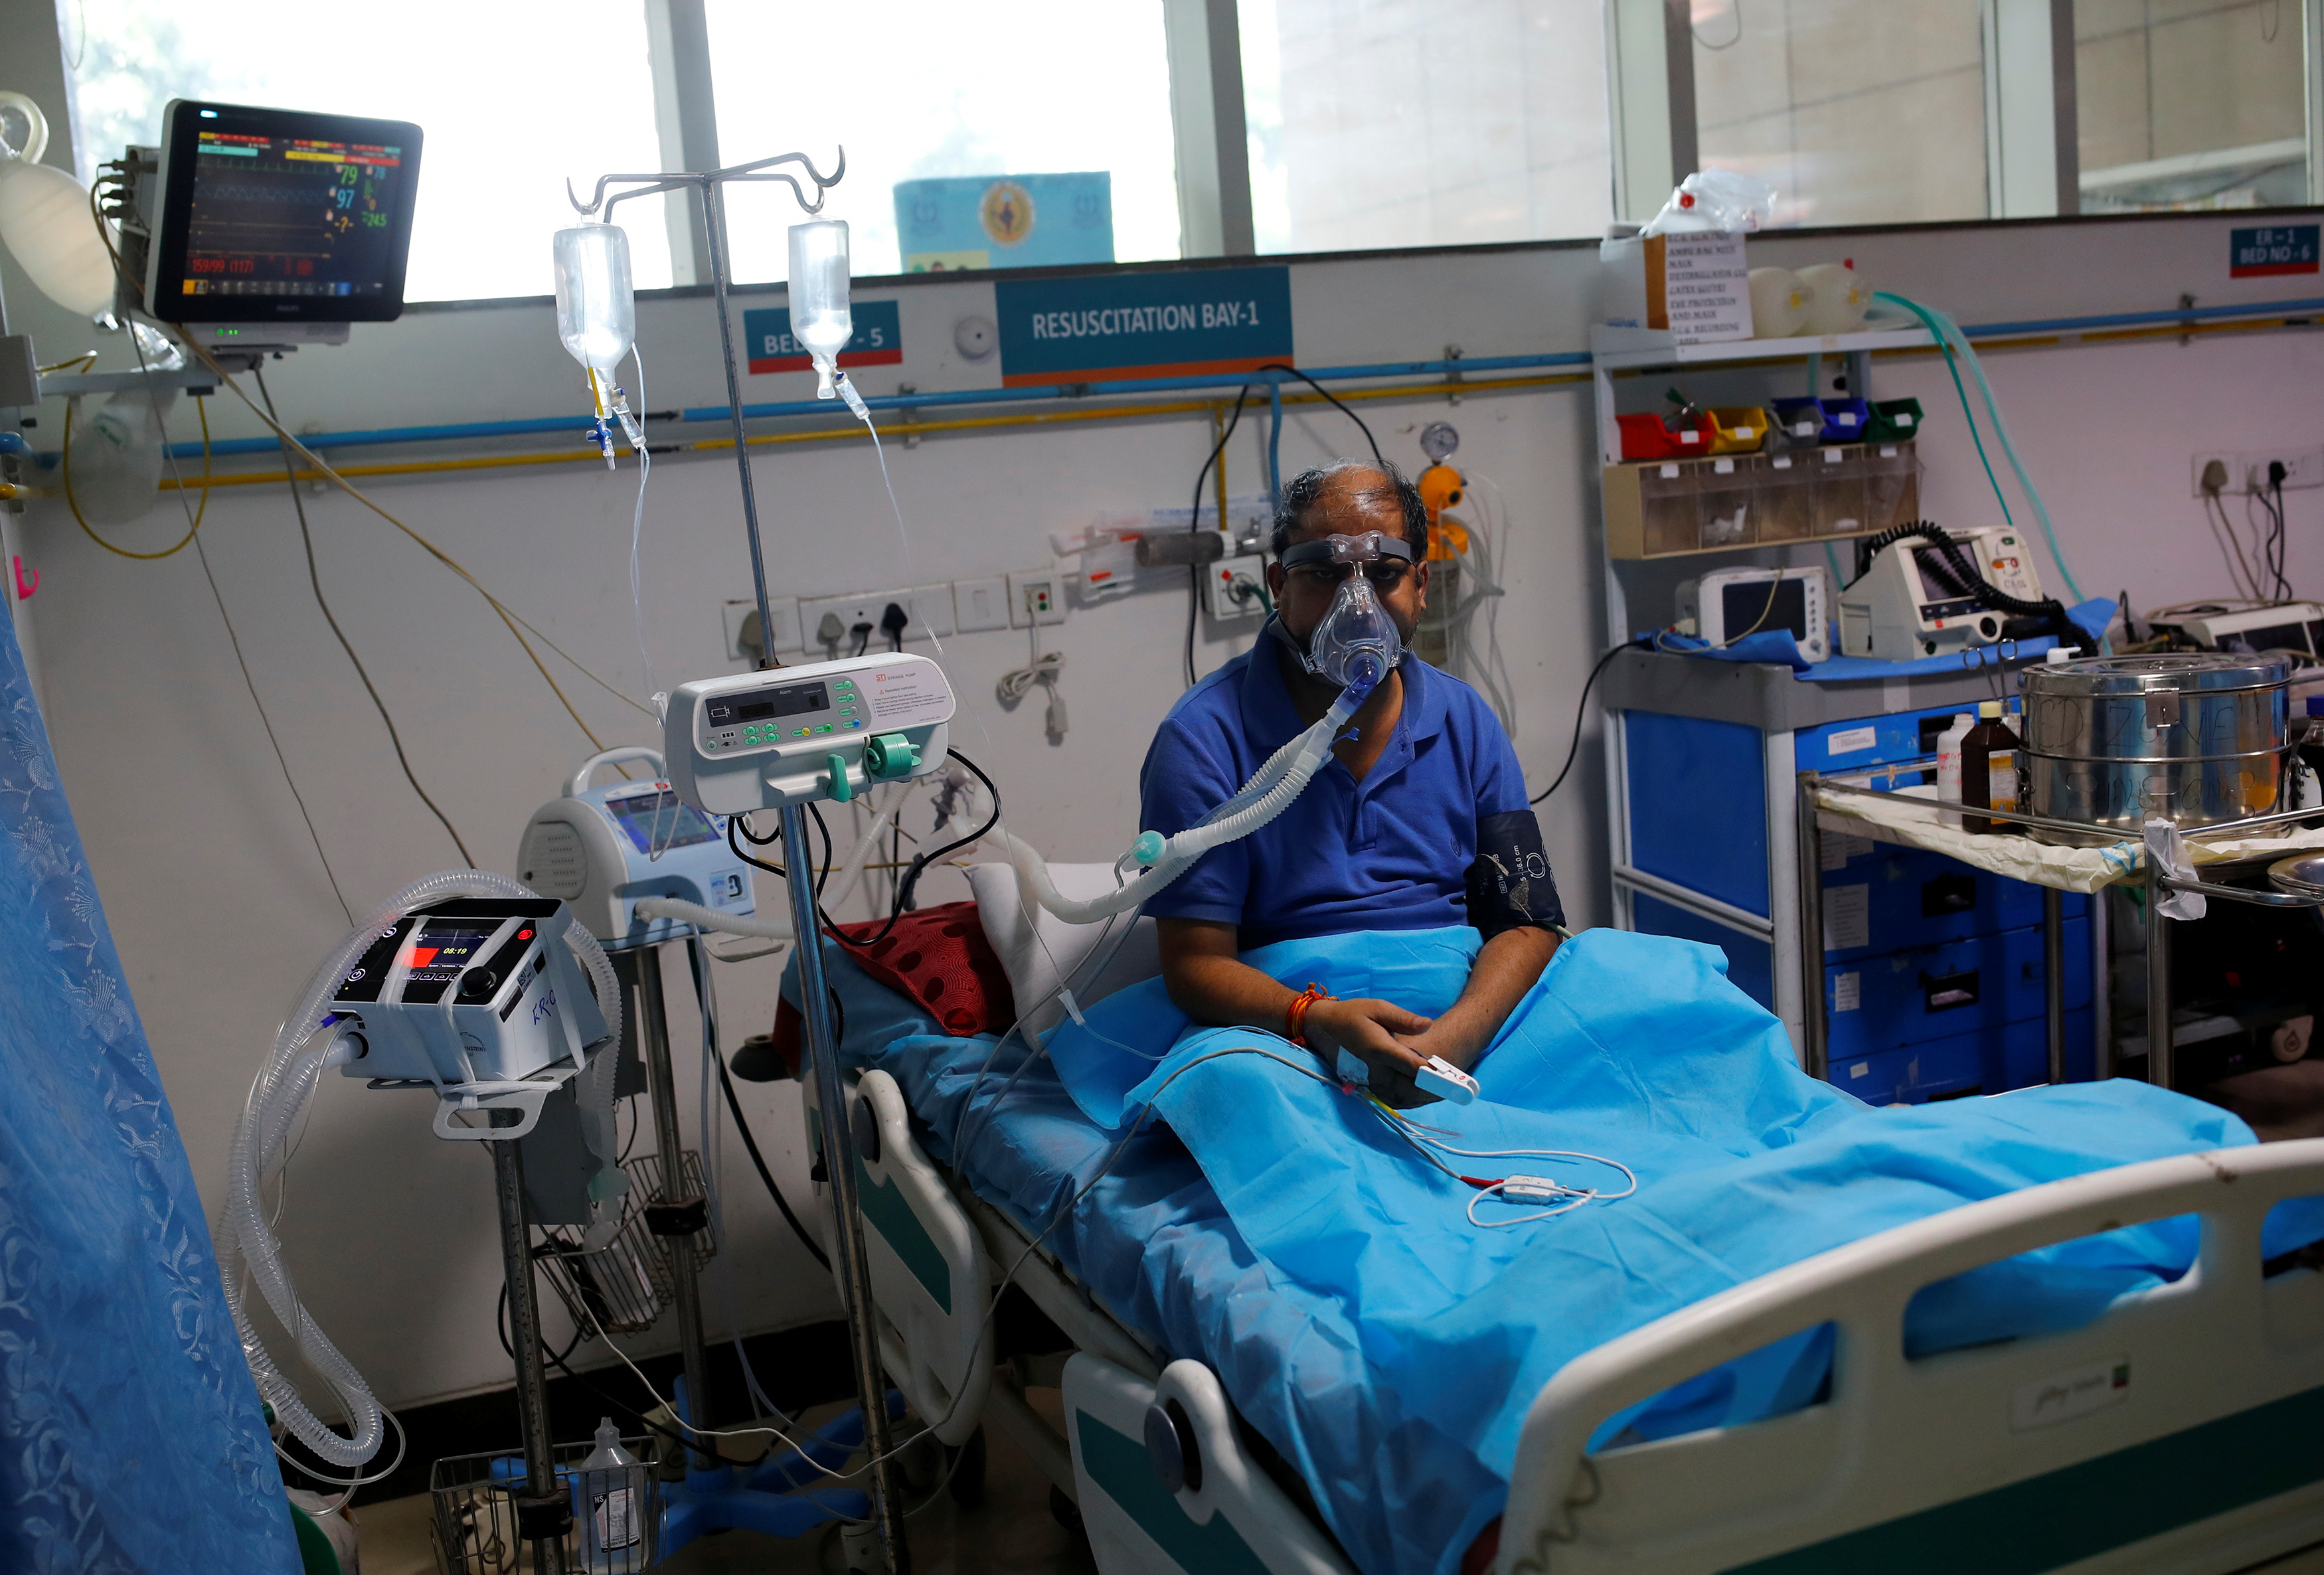 A man suffering from coronavirus disease (COVID-19), receives treatment as a Syringe Infusion Pump, donated by France is seen next to his bed, inside the emergency room of Safdarjung Hospital in New Delhi, India, May 7, 2021. REUTERS/Adnan Abidi